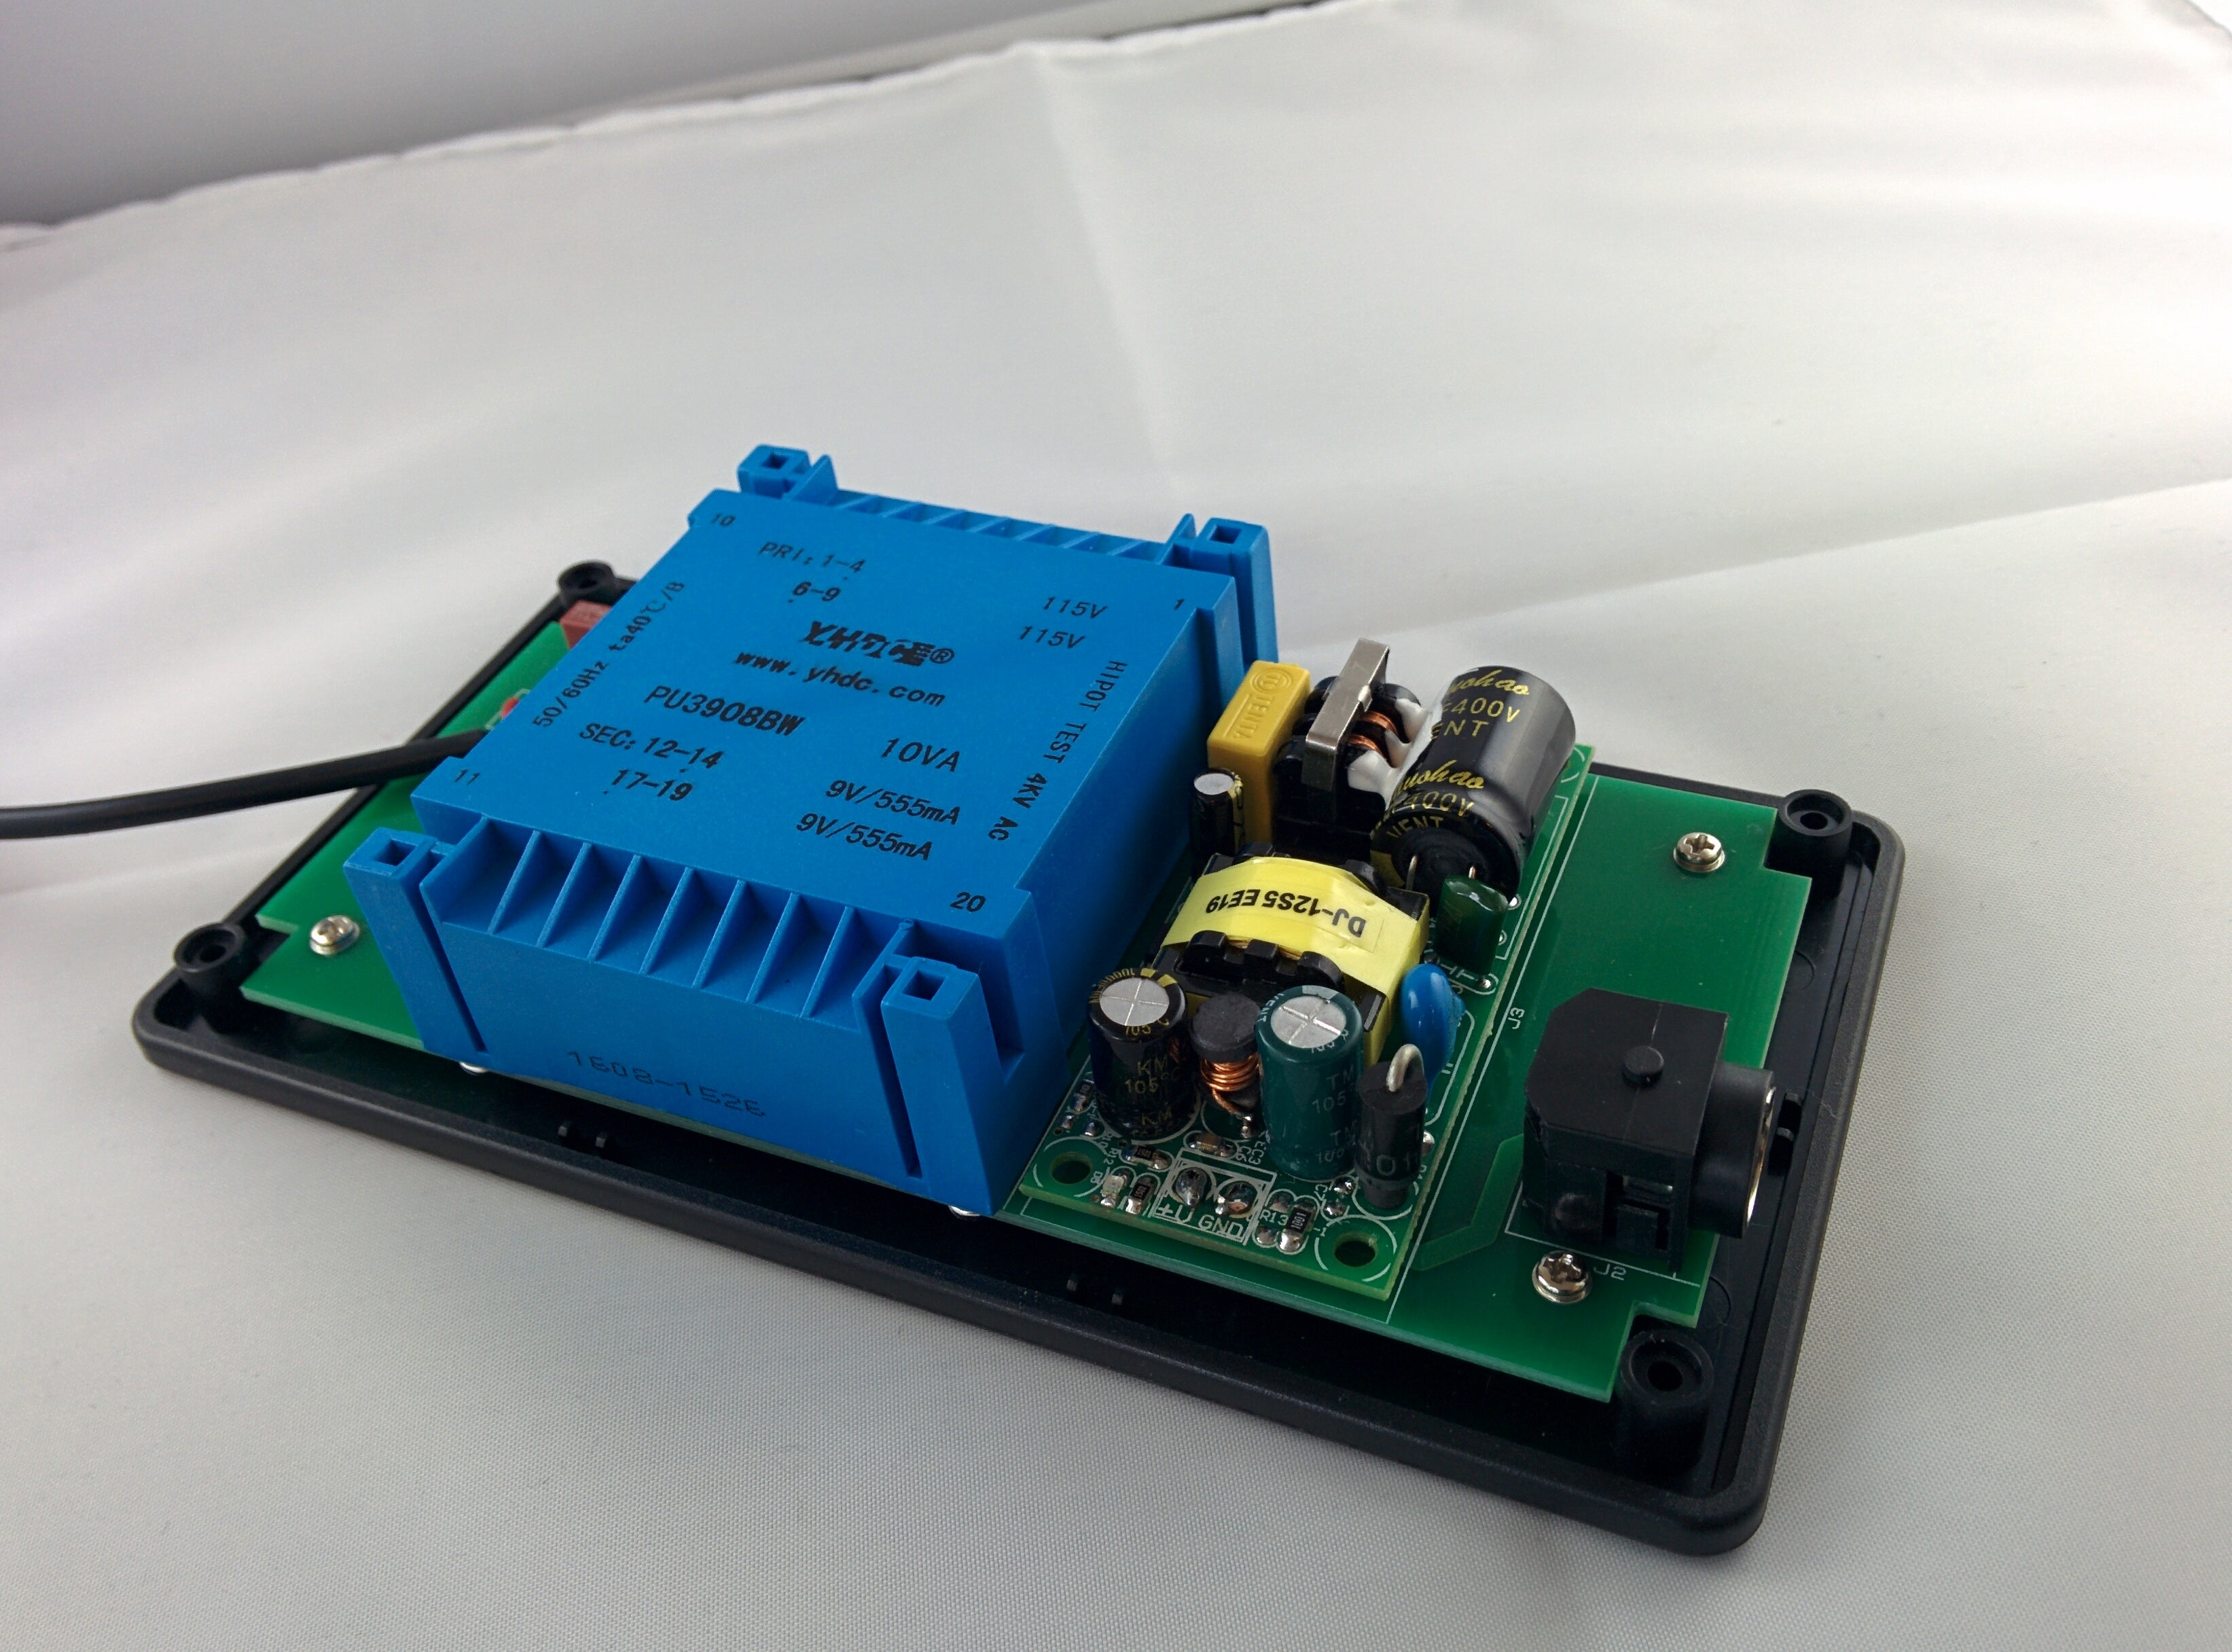 Update on the C64 power supply – Retro Game Supply